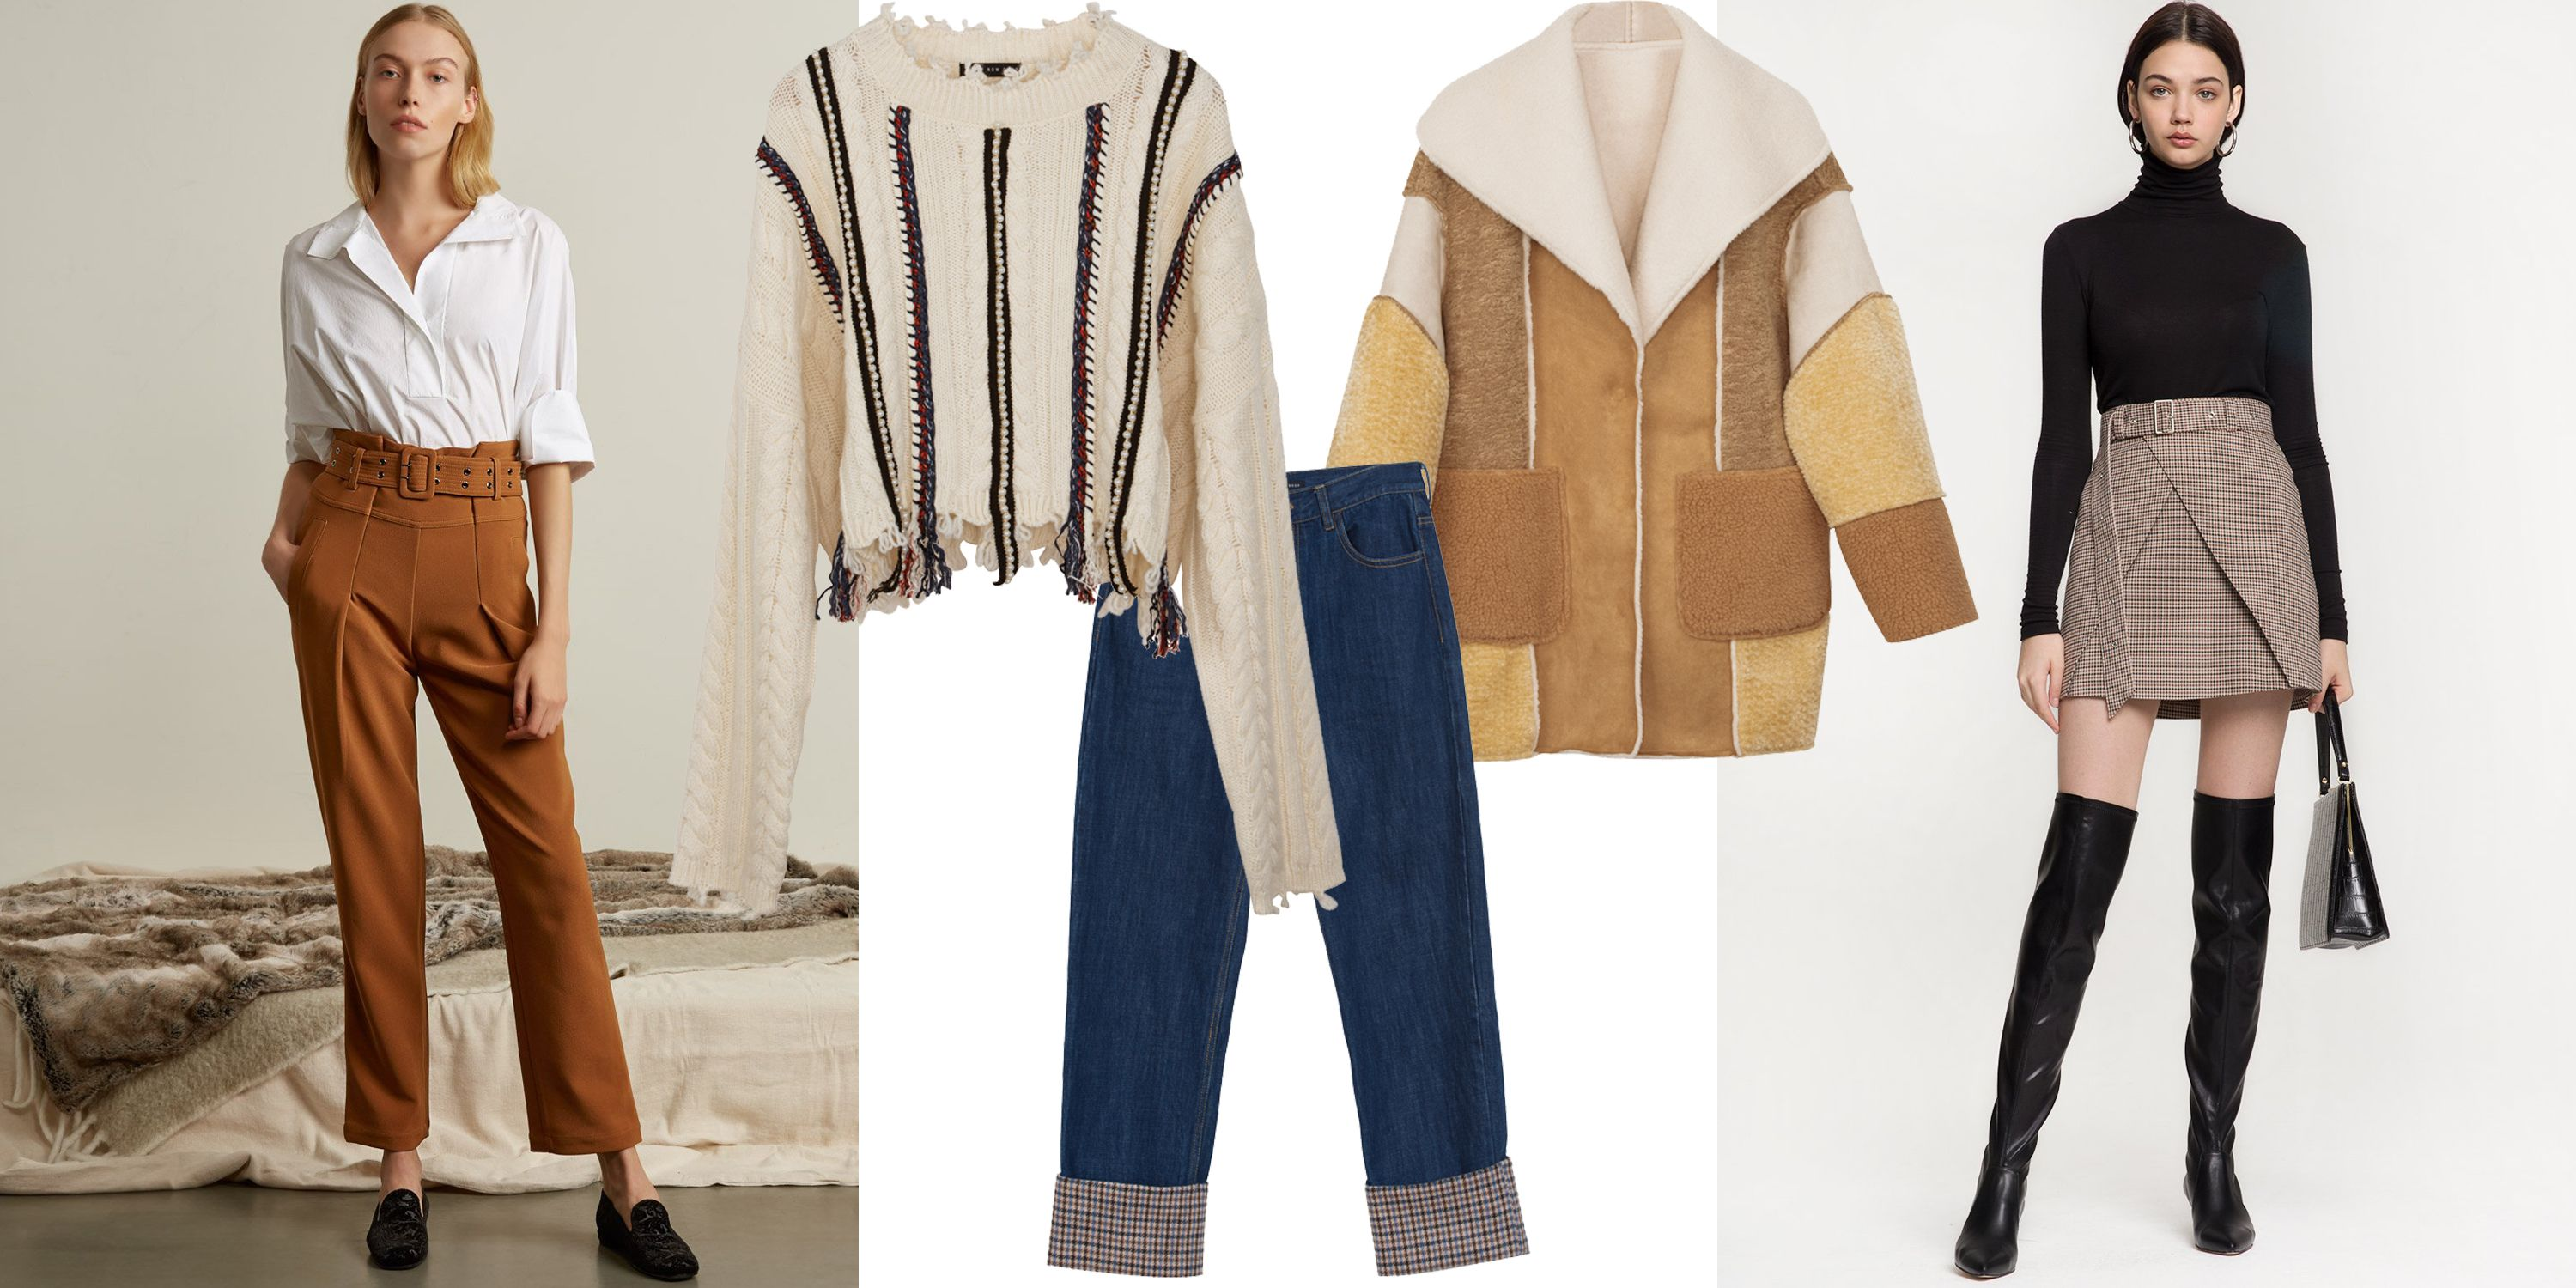 5318bafbaa 10 Affordable Fashion Sites You Probably Haven't Heard Of Yet